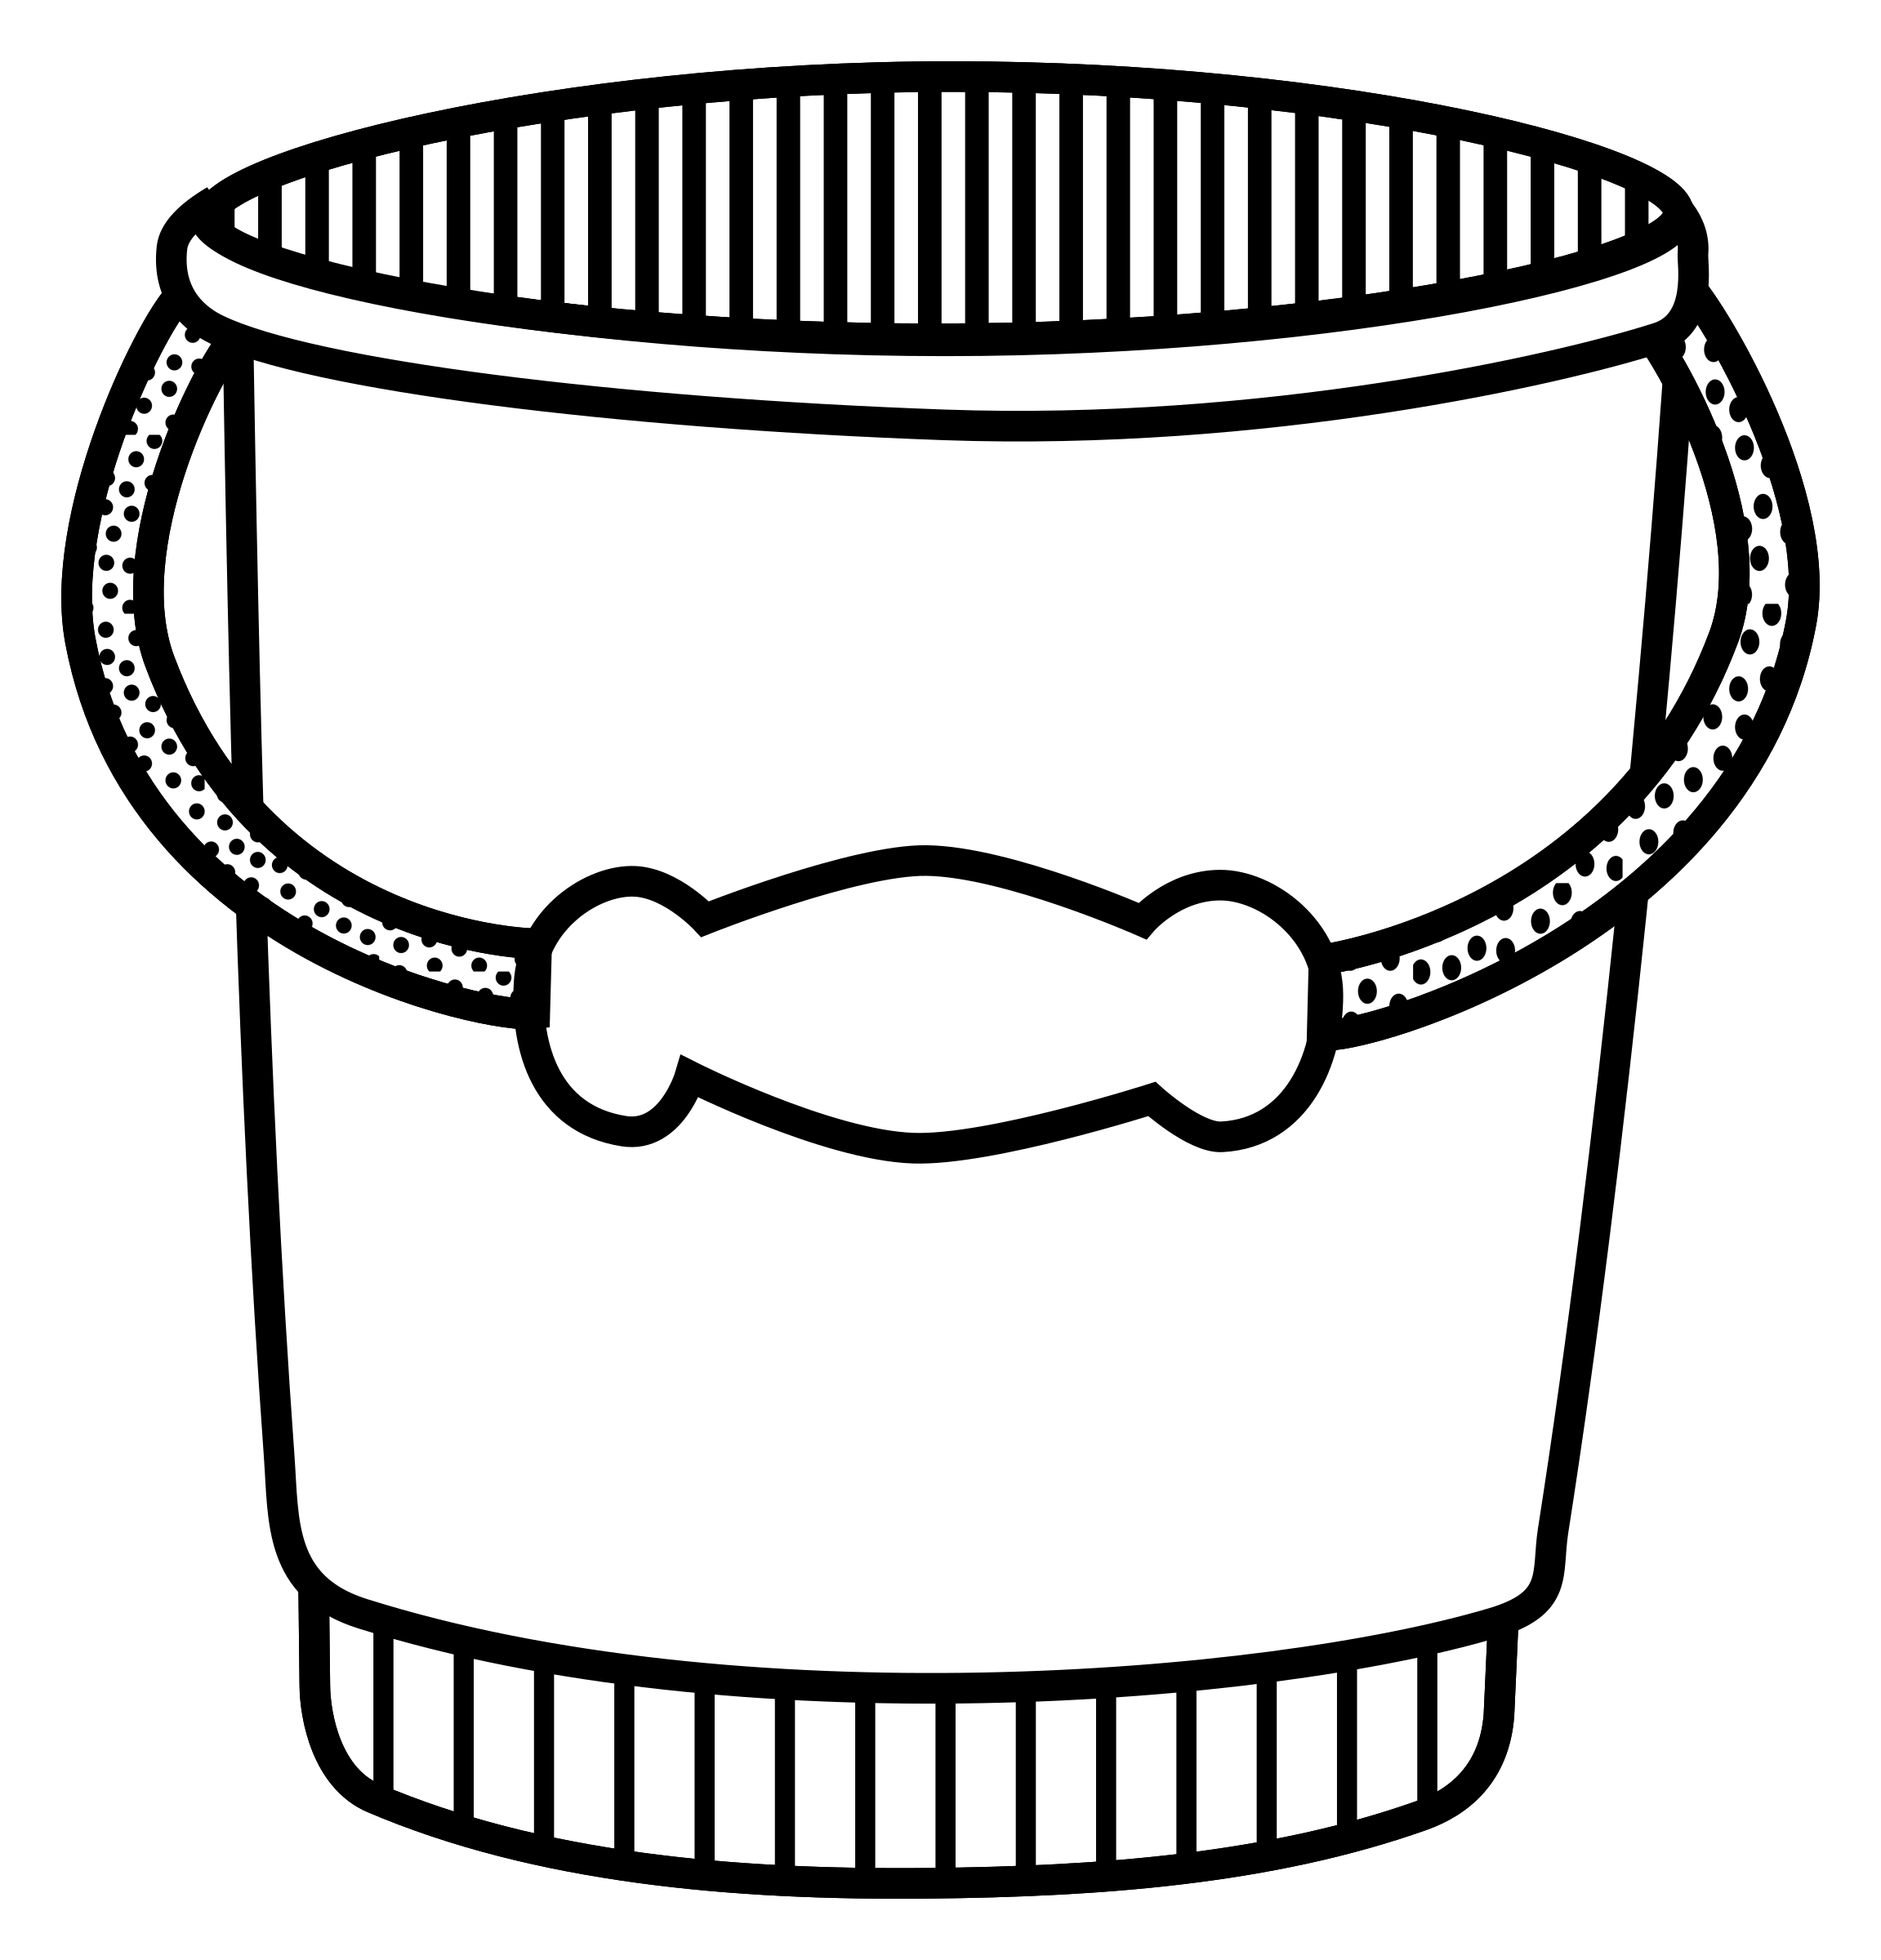 Bucket of water clipart black and white graphic library stock Water Basket Cliparts - Cliparts Zone graphic library stock